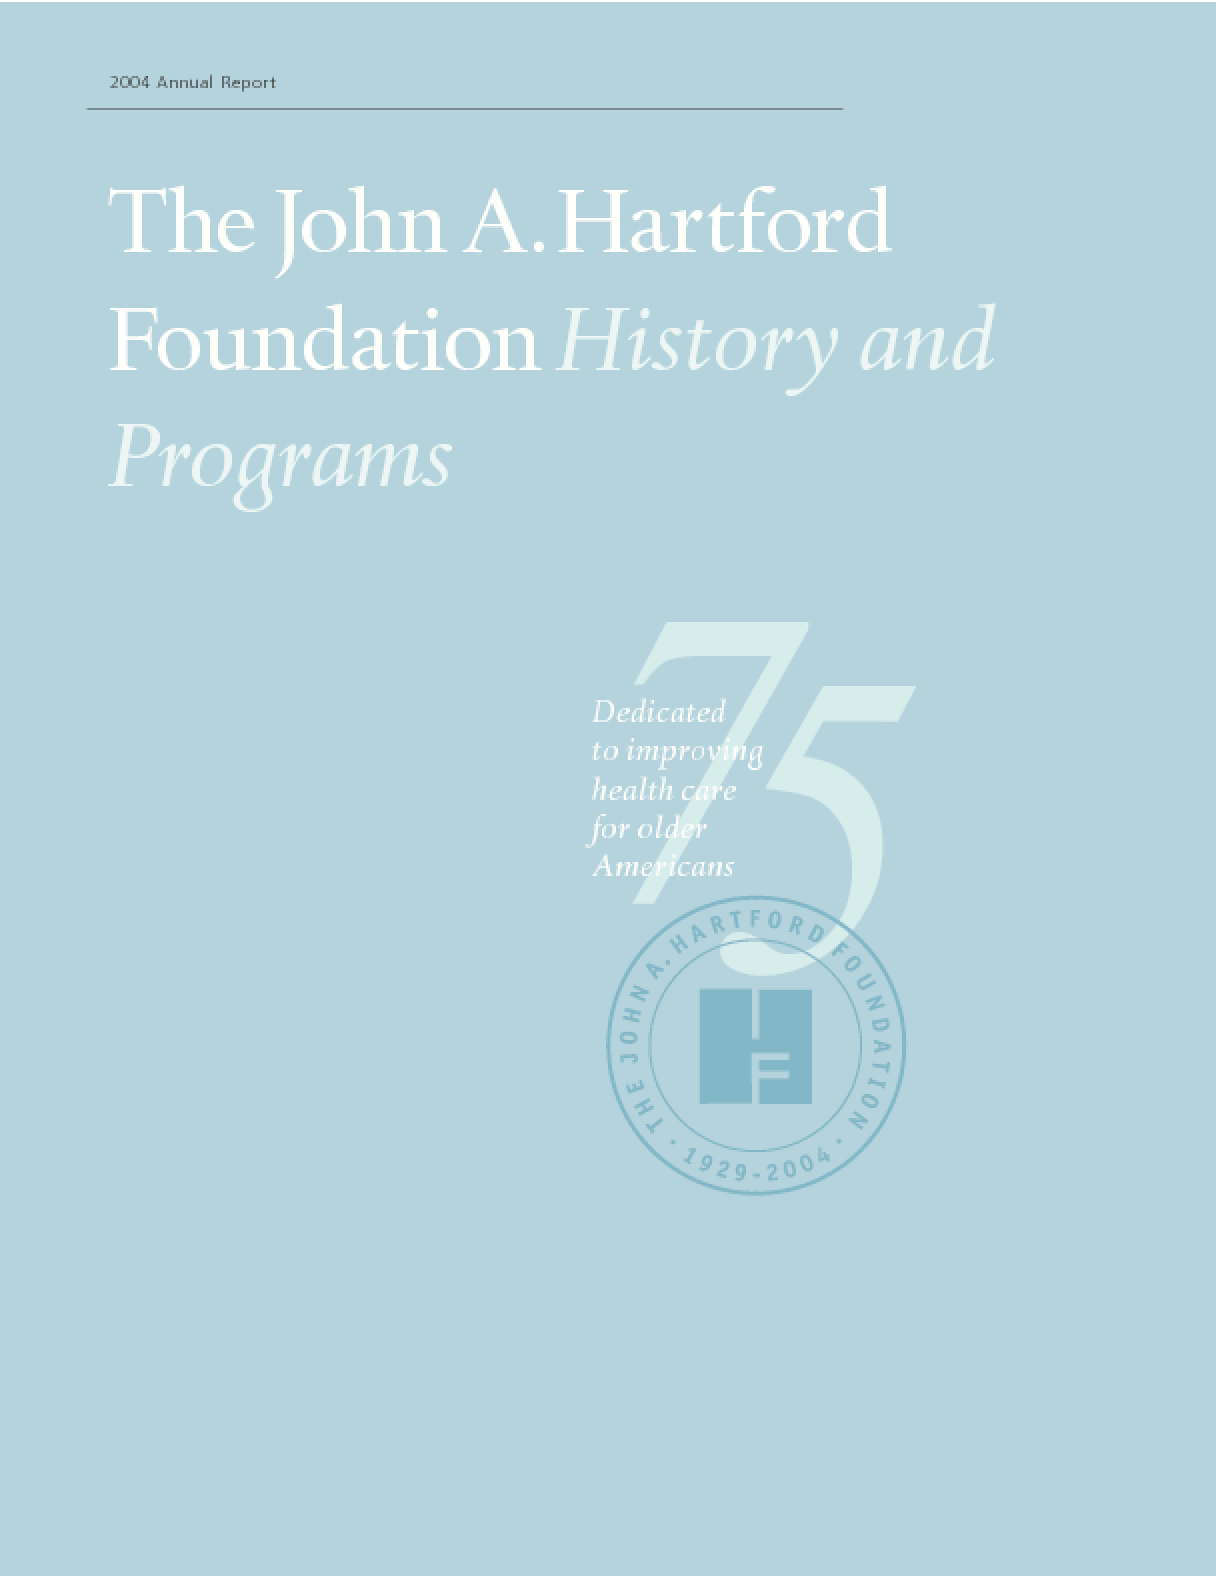 John A. Hartford Foundation - 2004 Annual Report